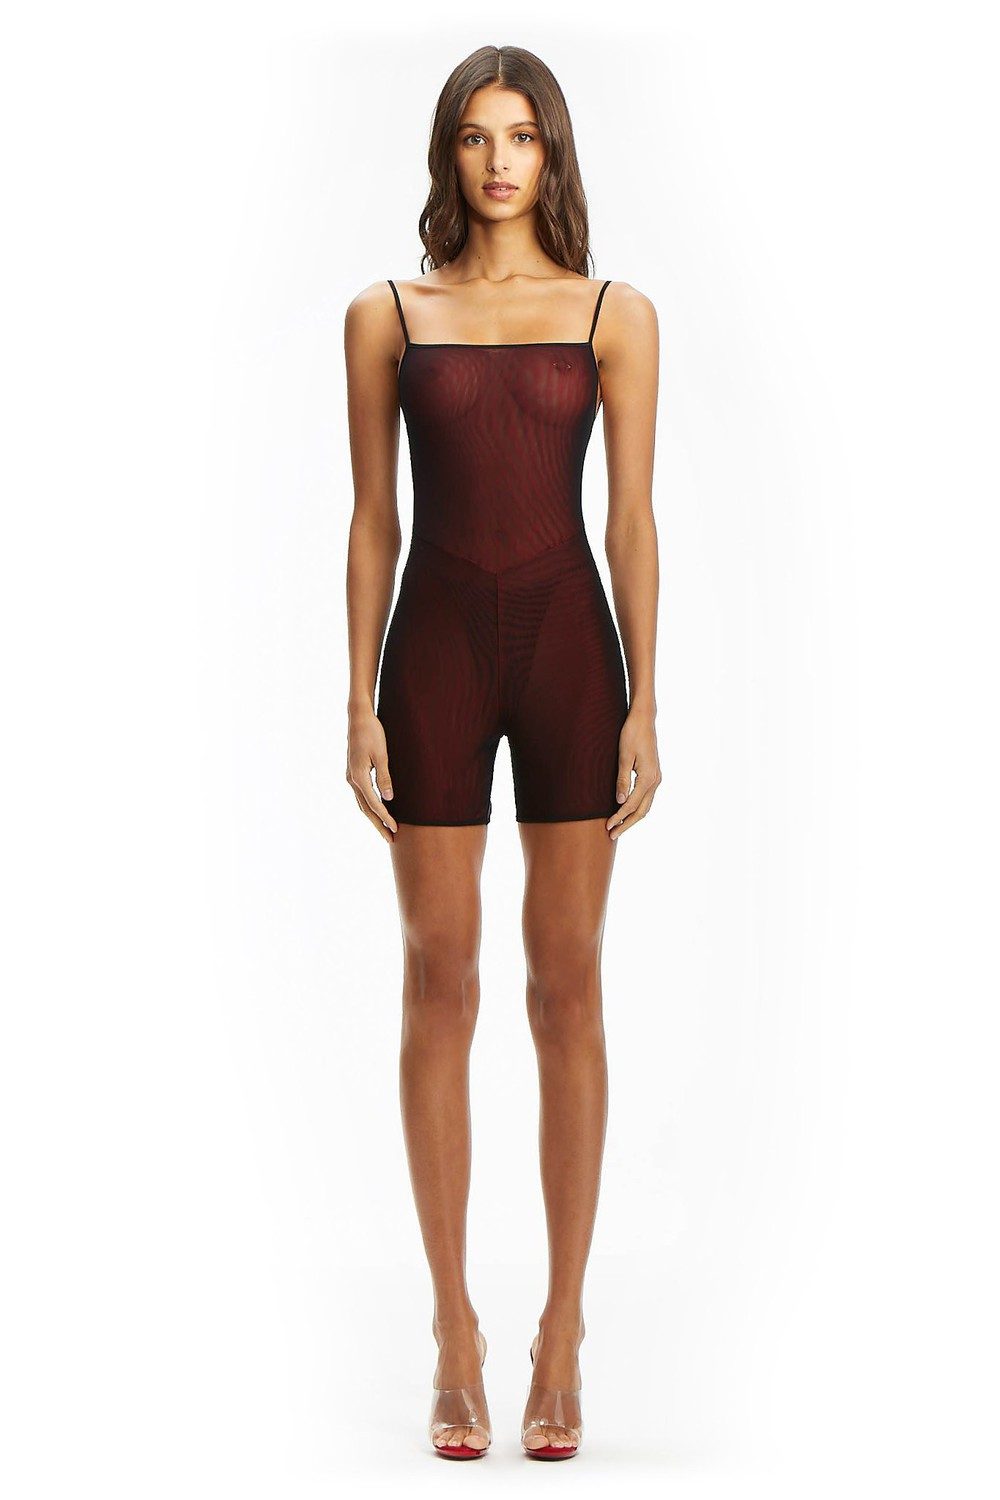 I Am Gia ULRIC PLAYSUIT - RED/BLACK